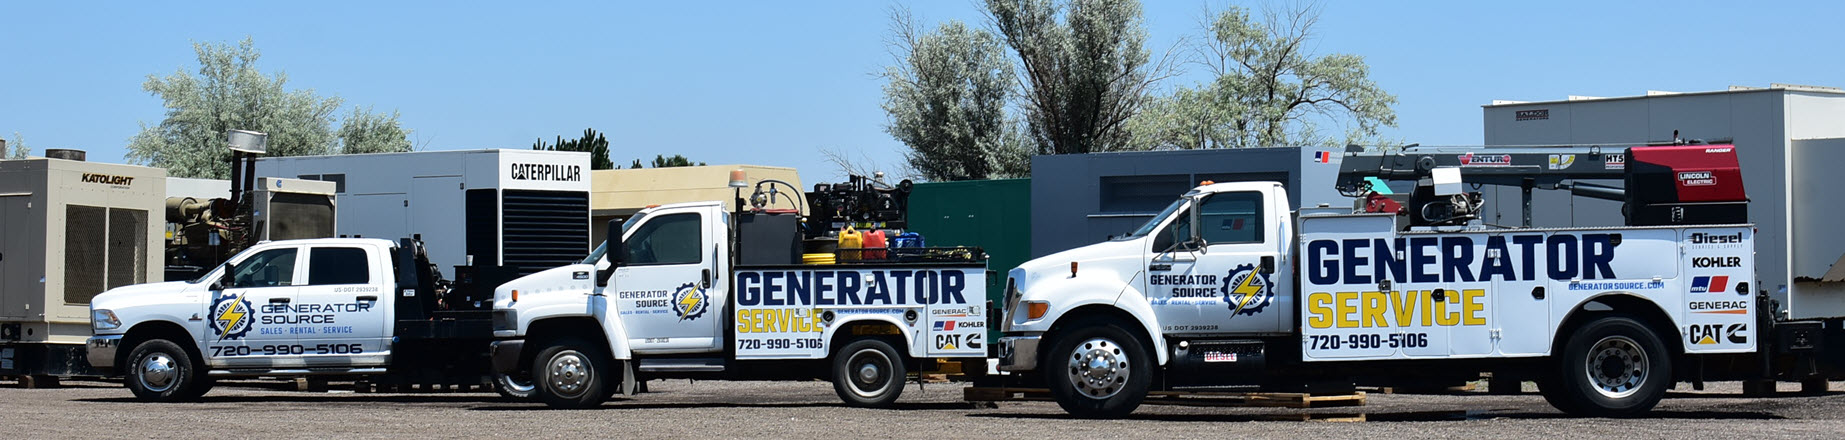 Industrial Diesel Generators: New & Used Generator Sets - We